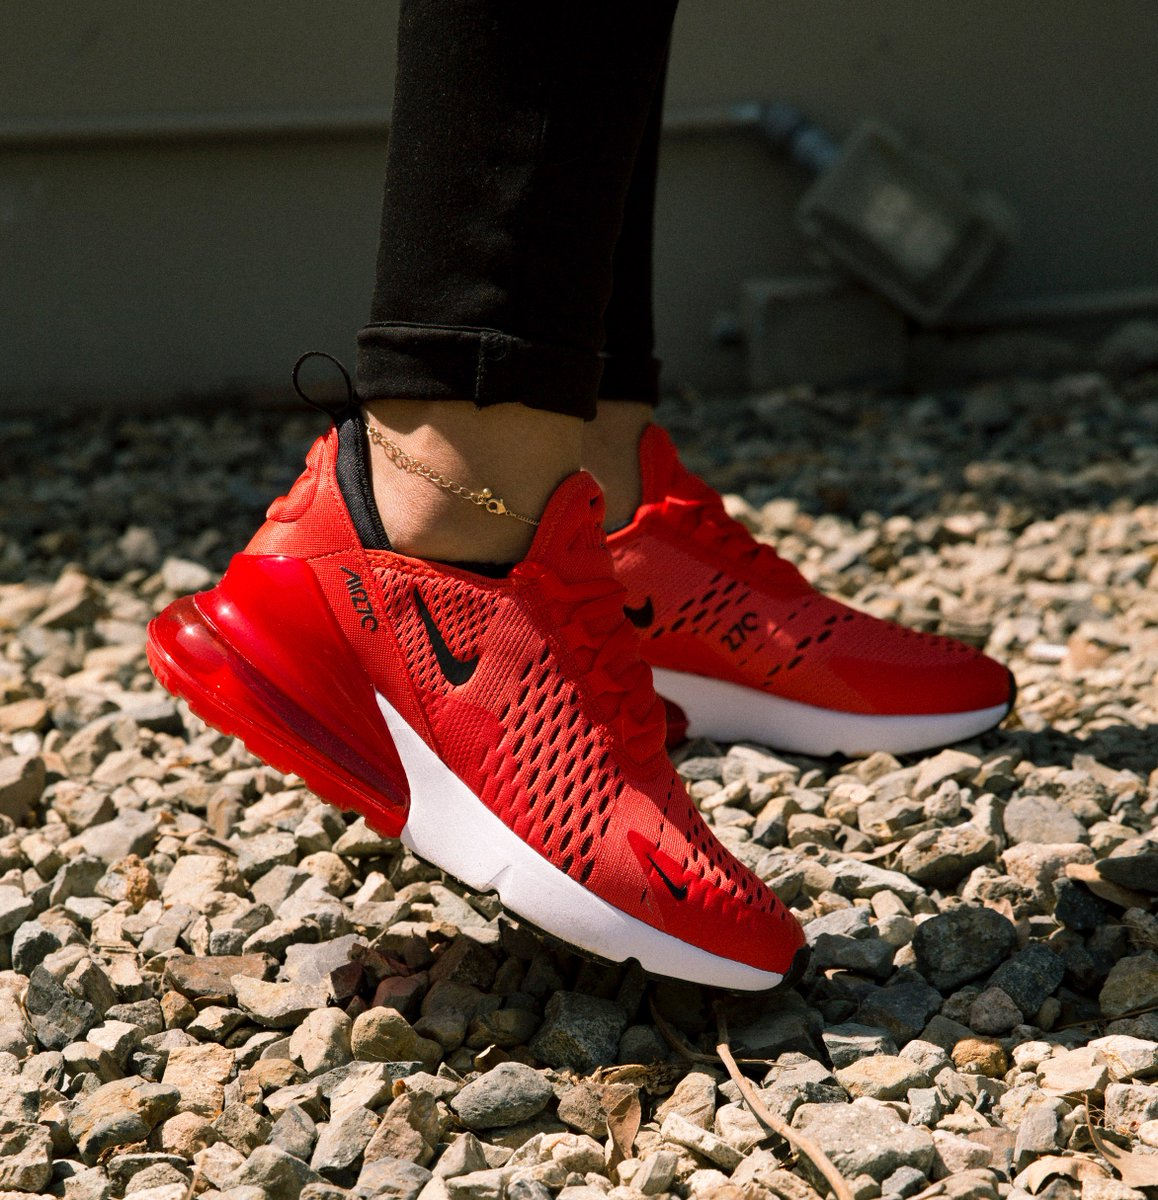 Pick up the Nike Air Max 270 Habanero Red on Shiekh with free shipping. -  MENS  http   bit.ly 2JhrPU1 GS  http   bit.ly 2xNsTto PS   http   bit.ly 2kTgQkX ... e829c6e4c